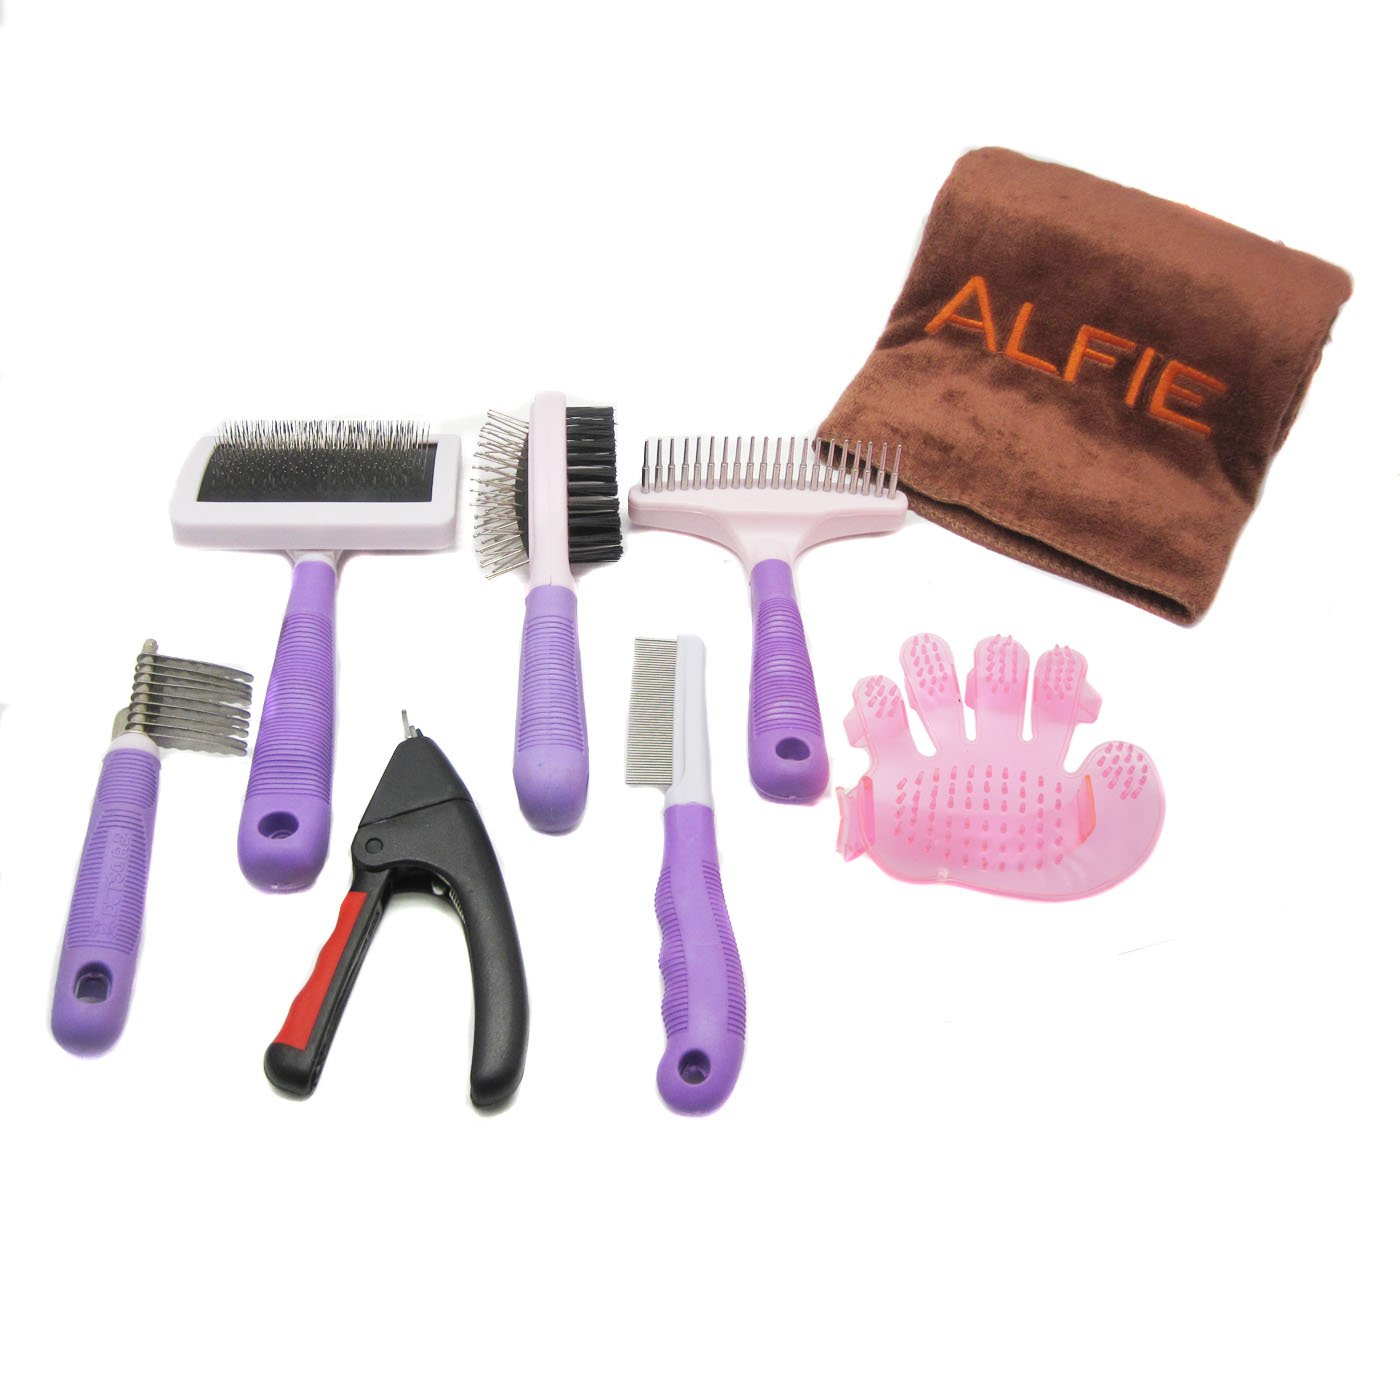 Alfie Pet by Petoga Couture - 7-Piece Home Grooming Kit with Microfiber Fast-Dry Towel - Double-Sided Brush, Flea Comb, Nail Trimmer, Slicker Comb, Dematting Tool, Undercoat Rake, Bath Massage Glove by Alfie